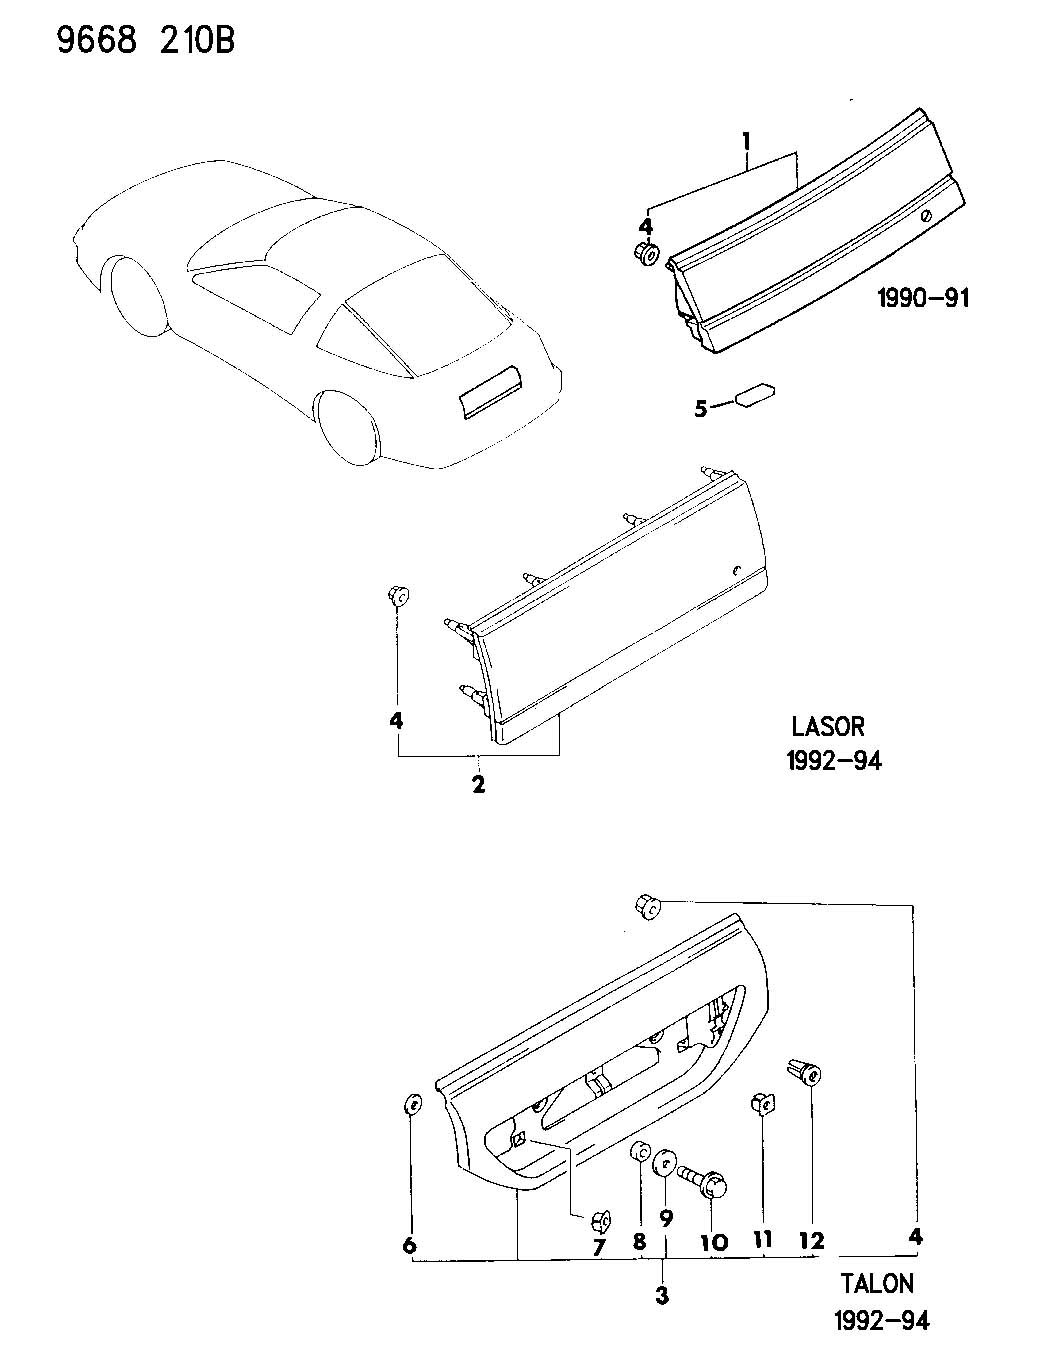 1990 plymouth laser wiring diagram